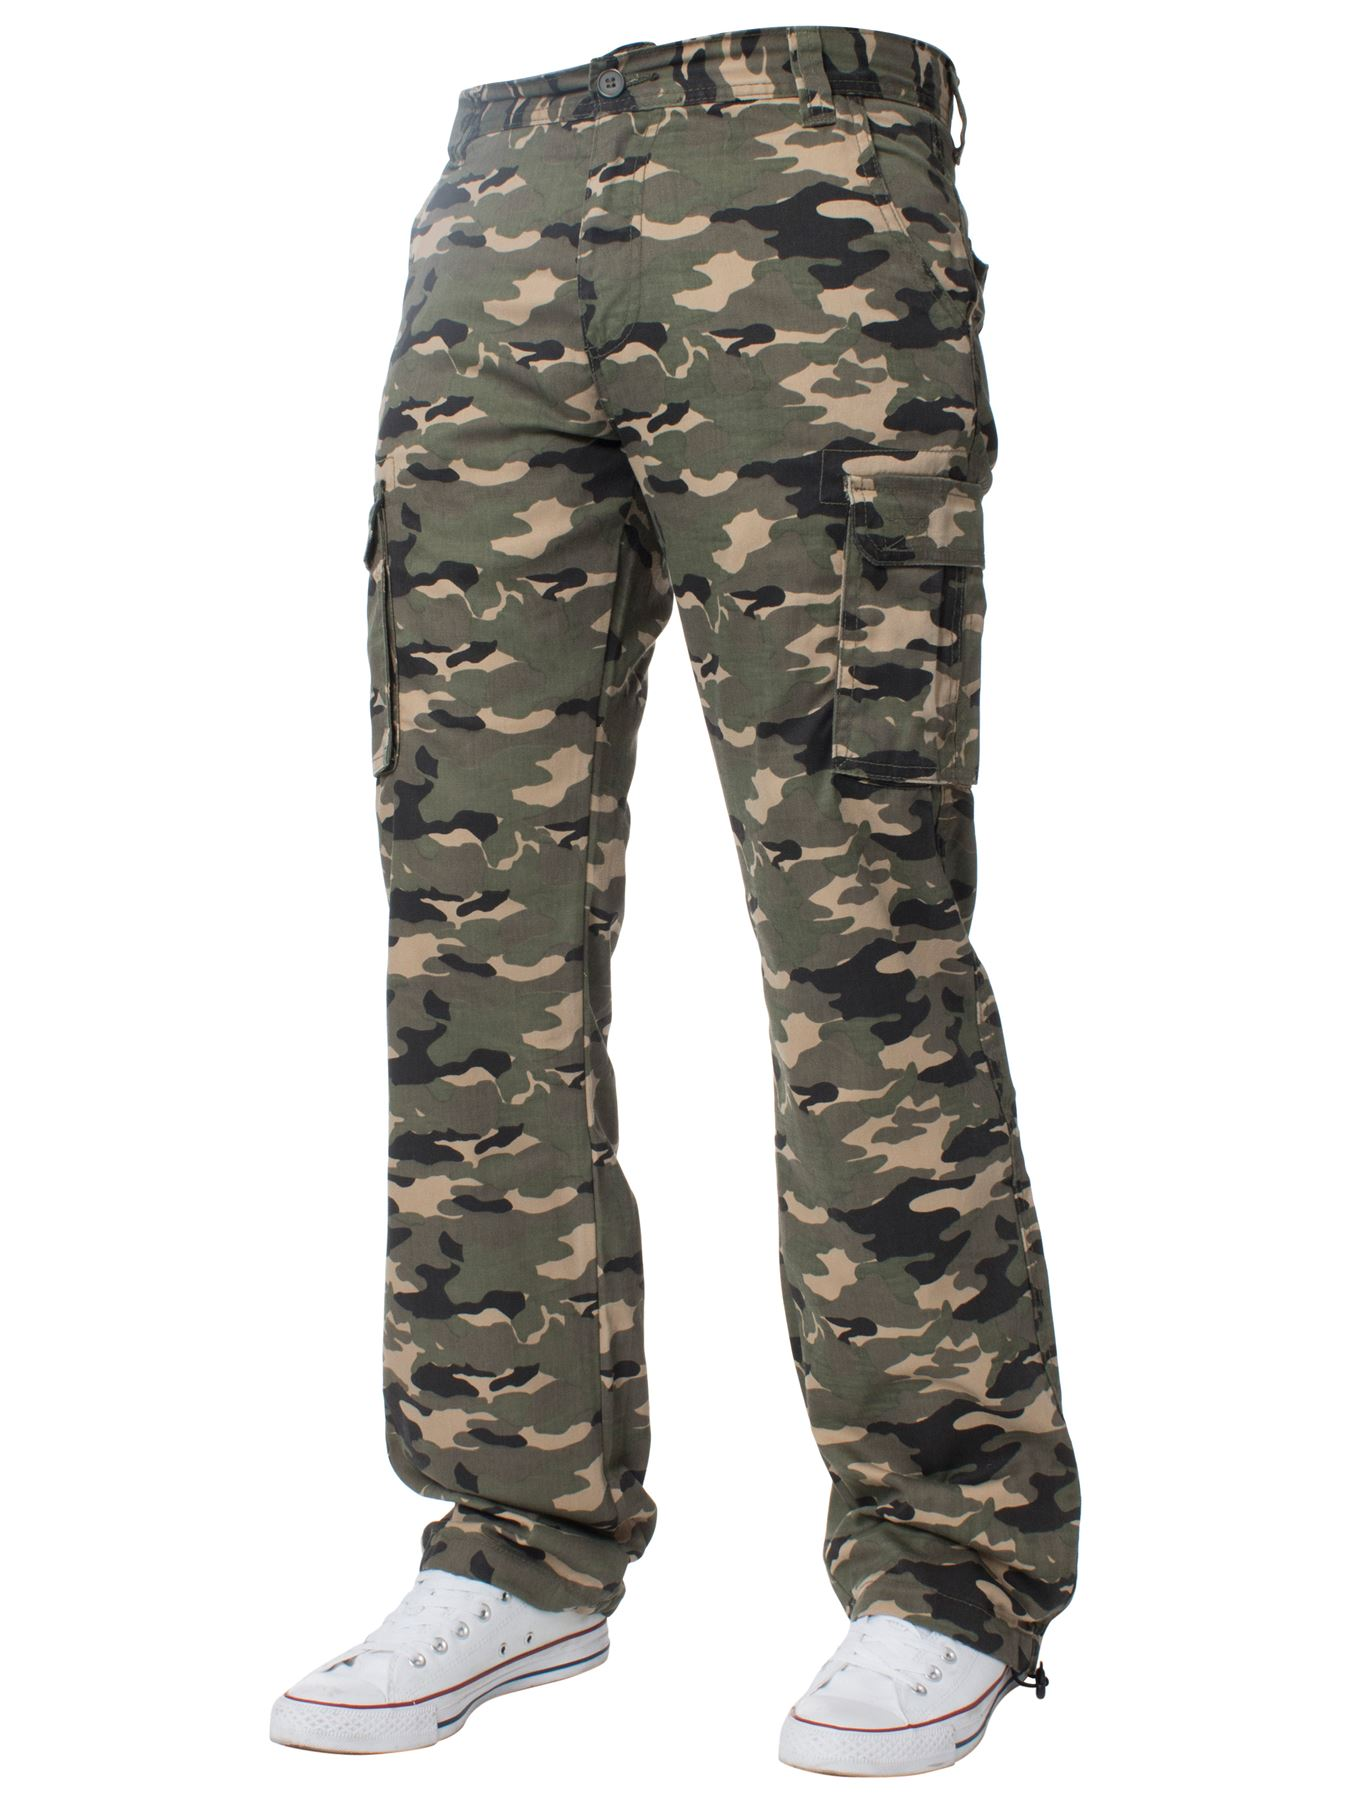 Kruze-Mens-Military-Combat-Trousers-Camouflage-Cargo-Camo-Army-Casual-Work-Pants thumbnail 15